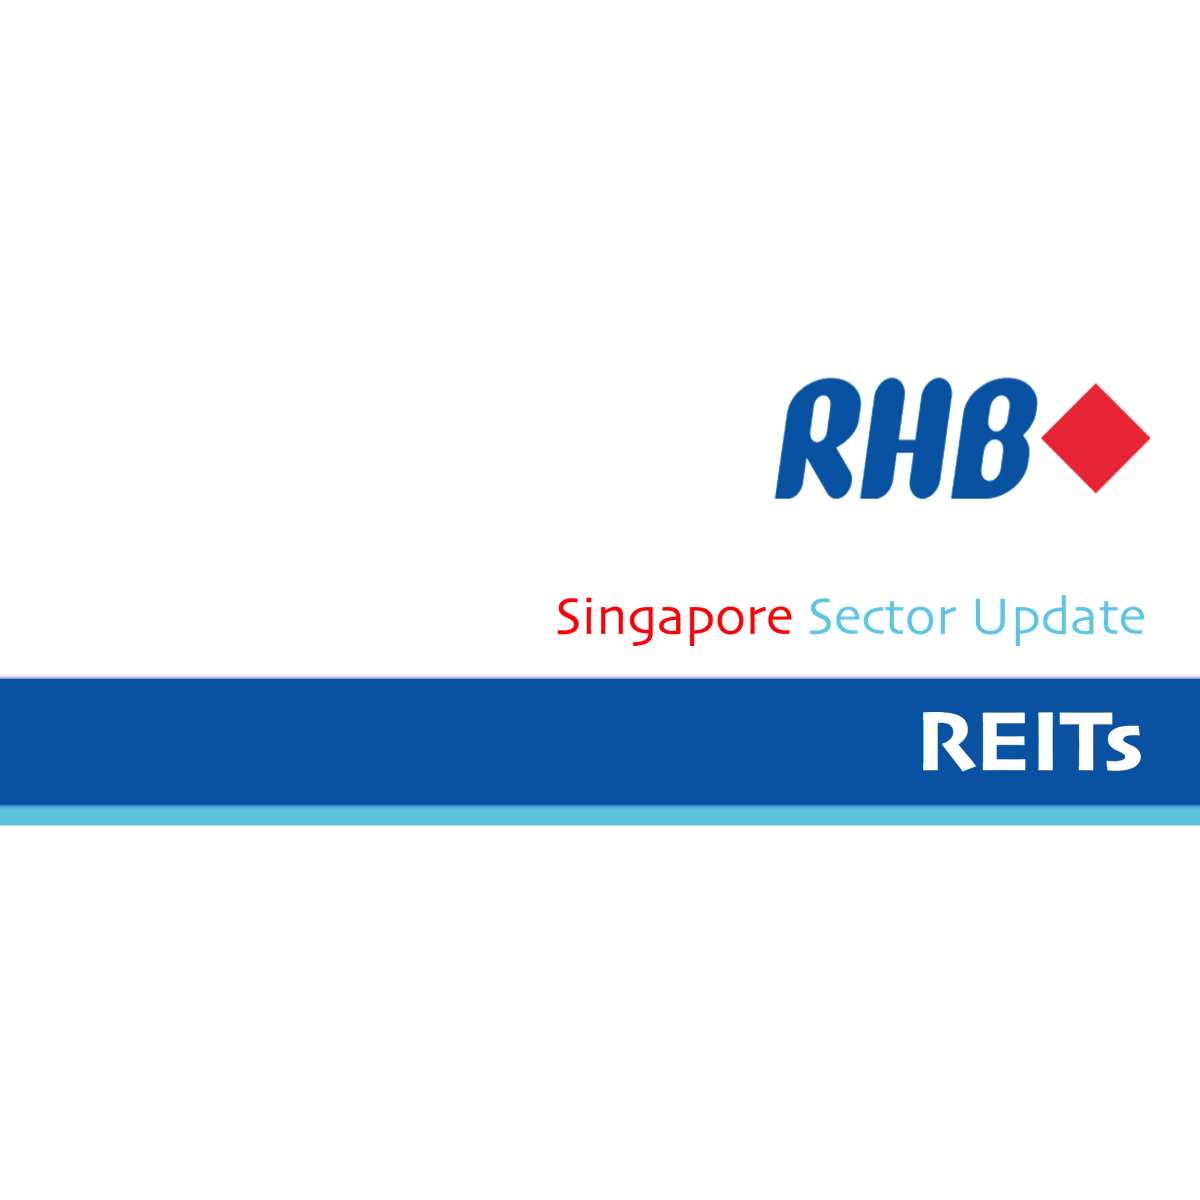 REITS - RHB Invest 2016-12-05: Recent Weakness Presents Buying Opportunities